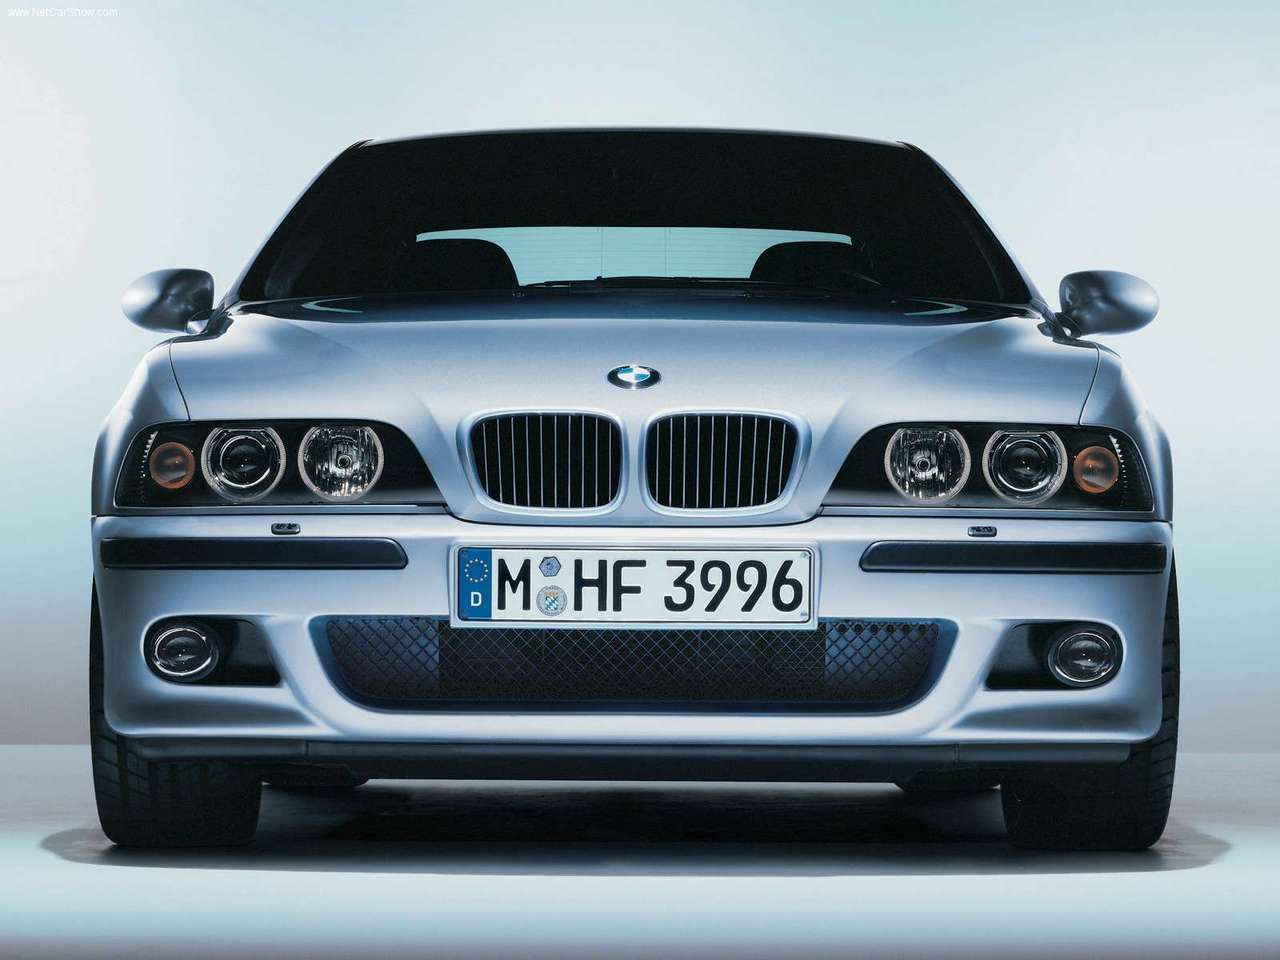 5 Reasons Why The Bmw M5 E39 Is Better Than The Audi Rs6 C5